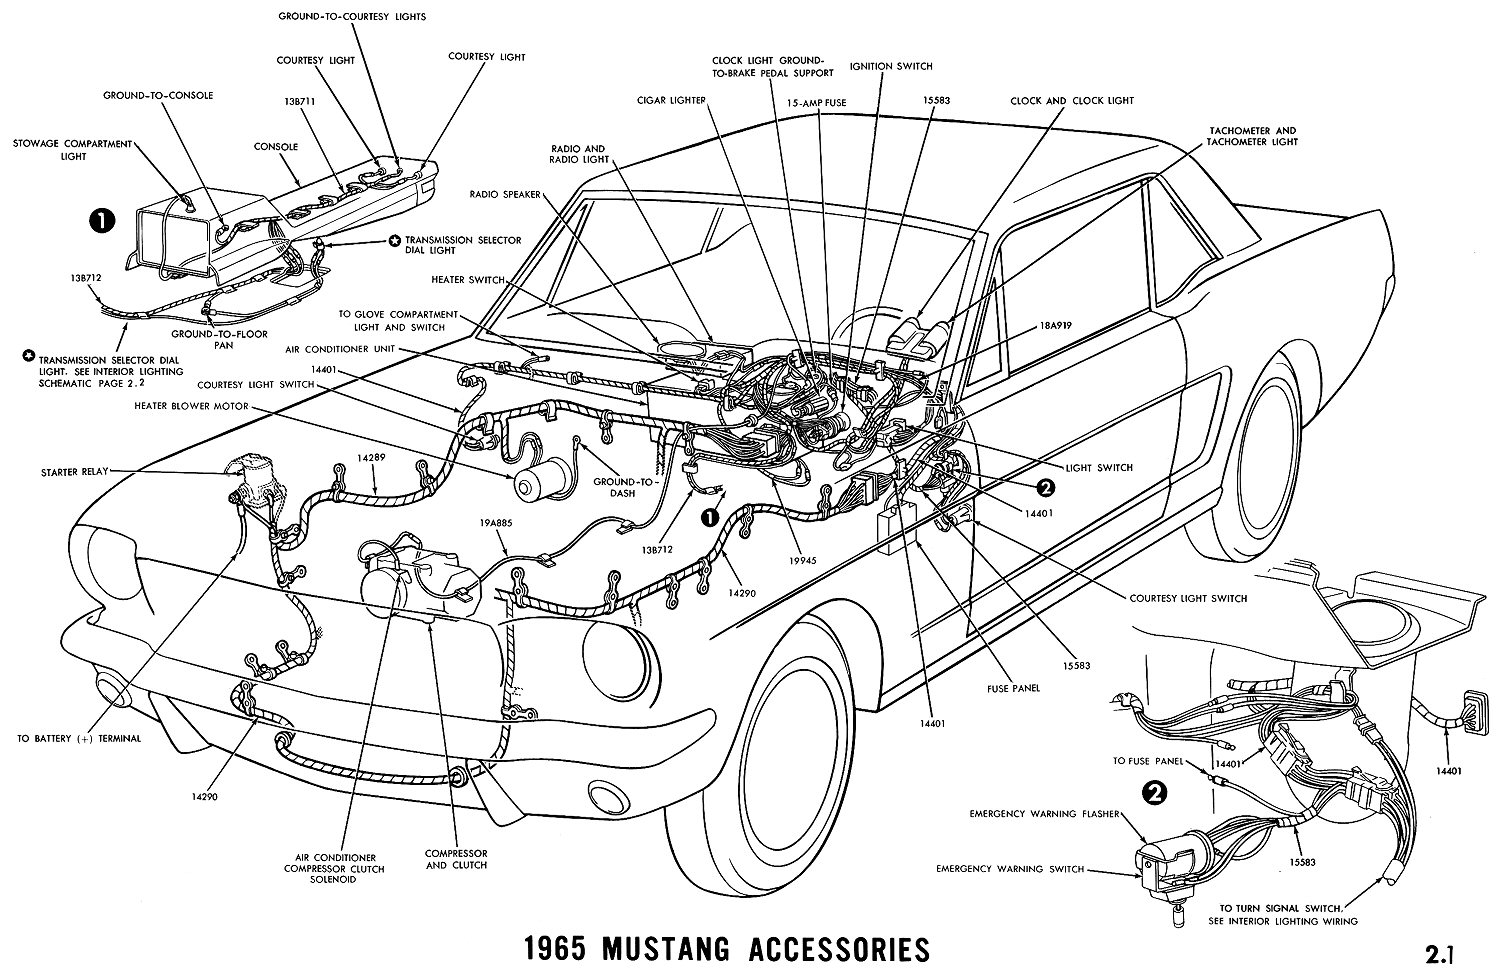 65 mustang accesories 1965 mustang accesories diagram 03 mustang fuse box location at gsmx.co